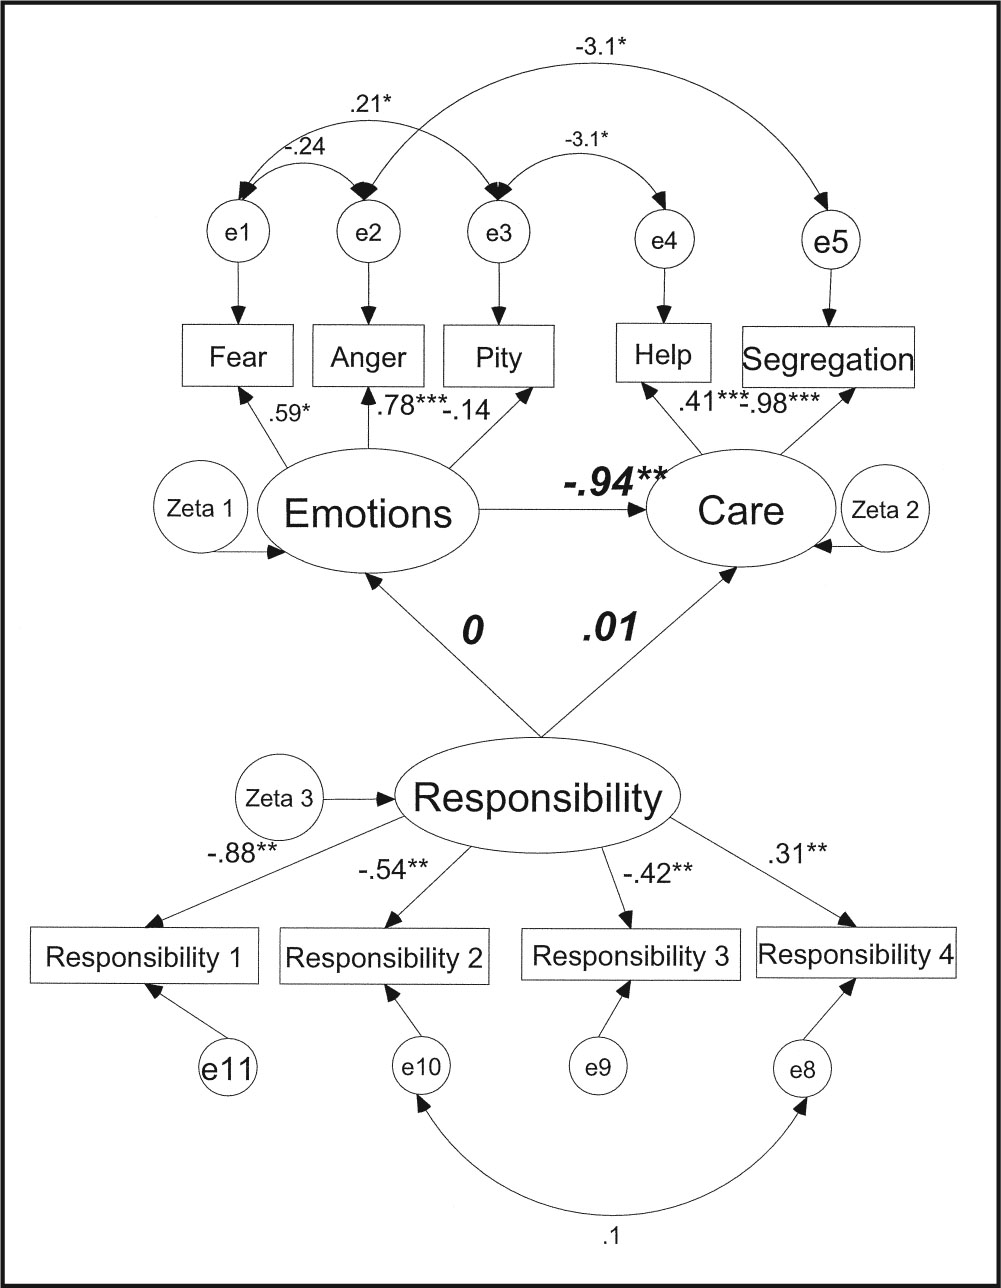 Attribution Model (standardized Sem Coefficients) for Students' Attitudes Toward Individuals with Mental Illness Before the Clinical Clerkship. *p < 0.05; **p < 0.01; †p < 0.001.